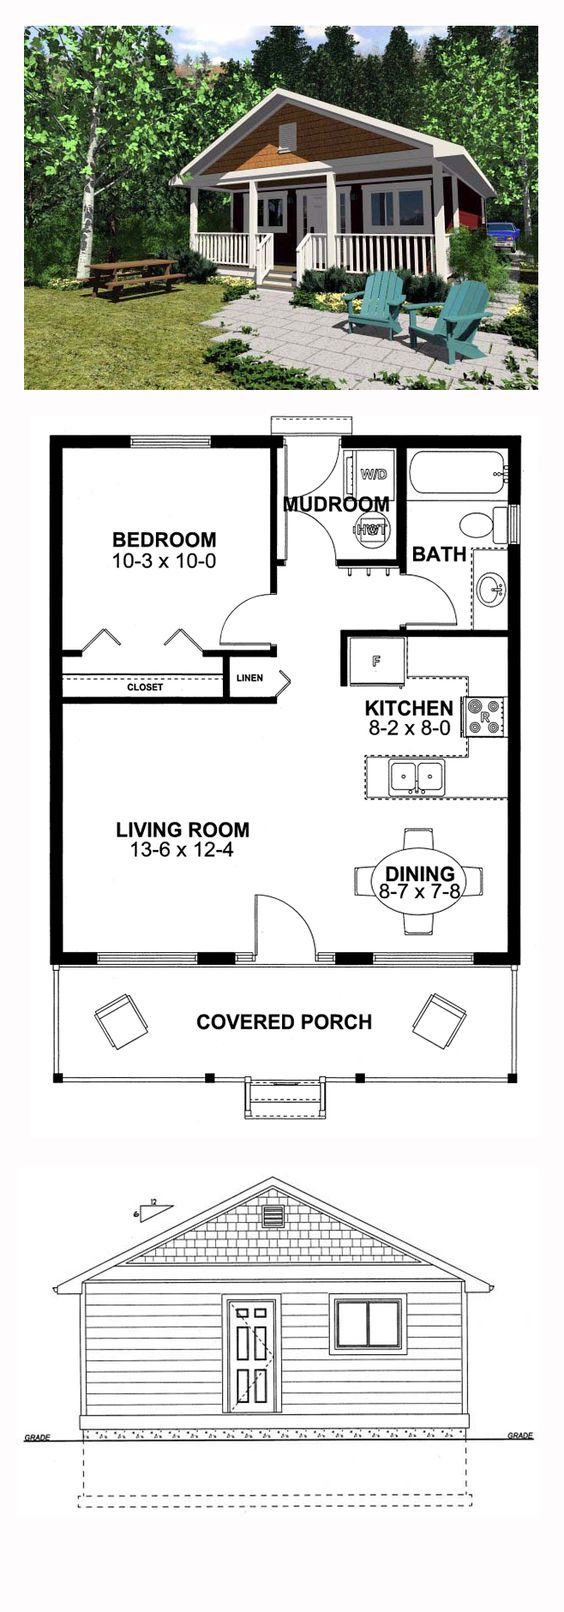 Narrow Lot House Plan 99971 | Total Living Area: 598 sq. ft., 1 bedroom & 1 bathroom. This little cabin is just perfect for kicking back and enjoying your relaxation time, either indoors or on the front porch. #narrowlot